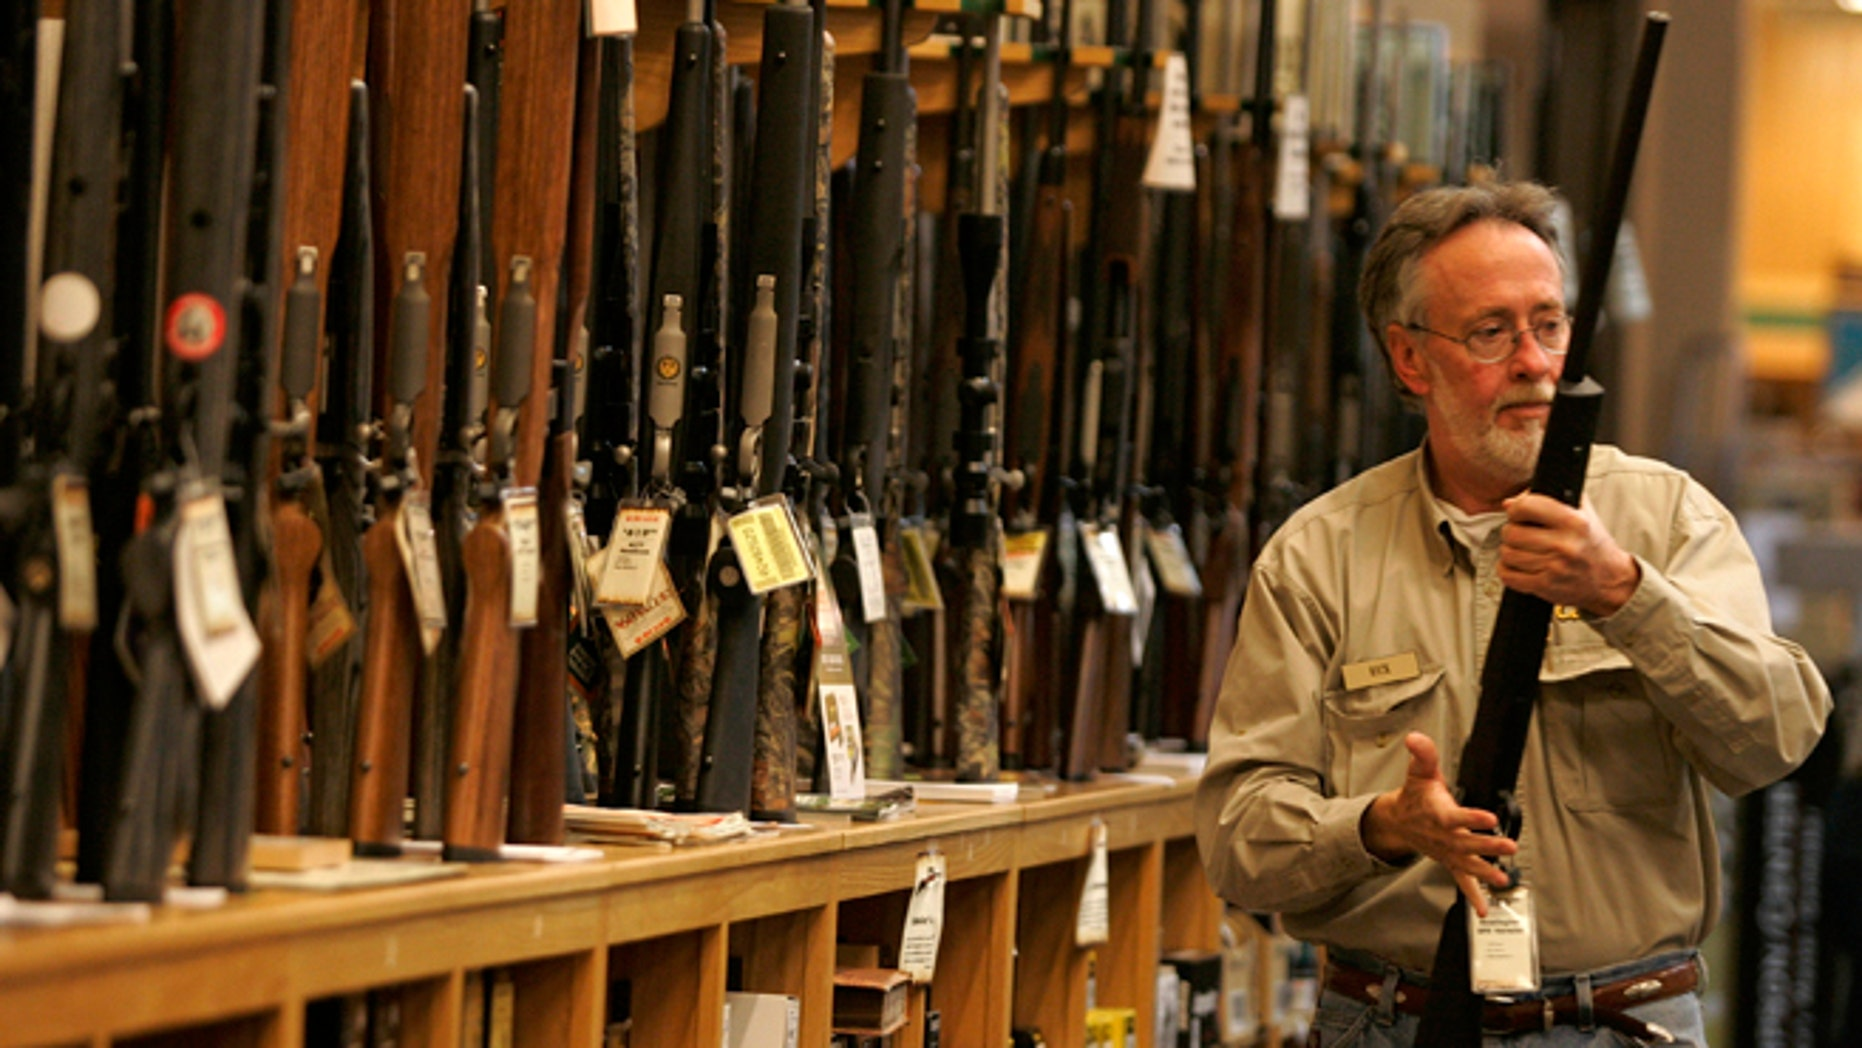 A salesman takes a rifle off the rack to show a customer at the Cabela's store in Fort Worth, Texas.